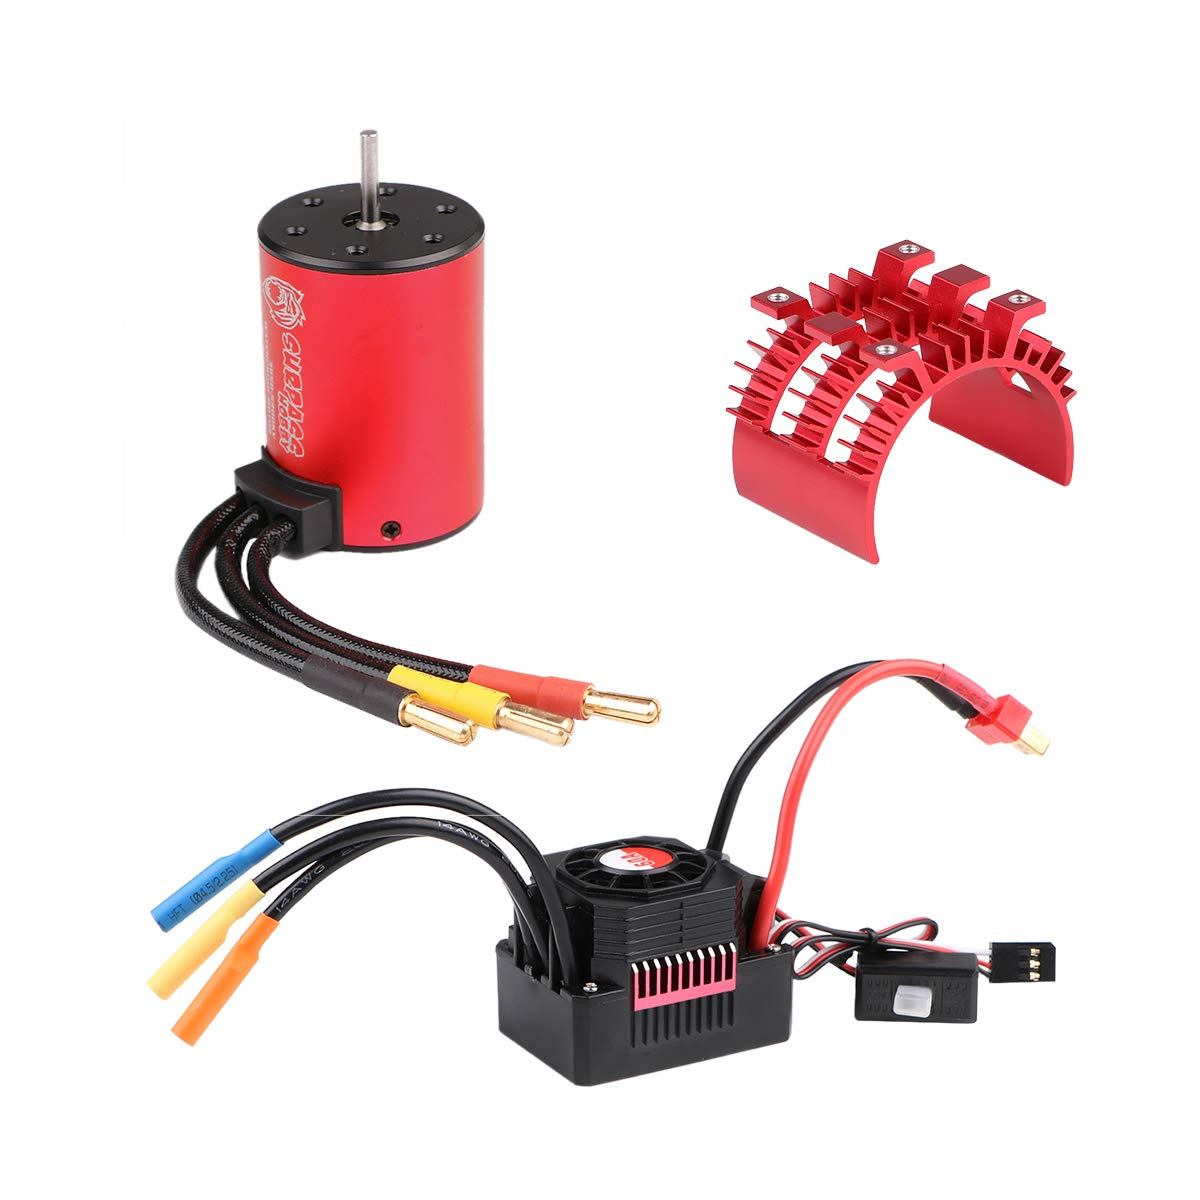 CrazeponyUK 3650 5200KV Brushless Motor with 60A ESC Electronic Speed Controller and Aluminum Heat Sink Waterproof Combo Set 3.175mm Shaft for 1 10 RC Car